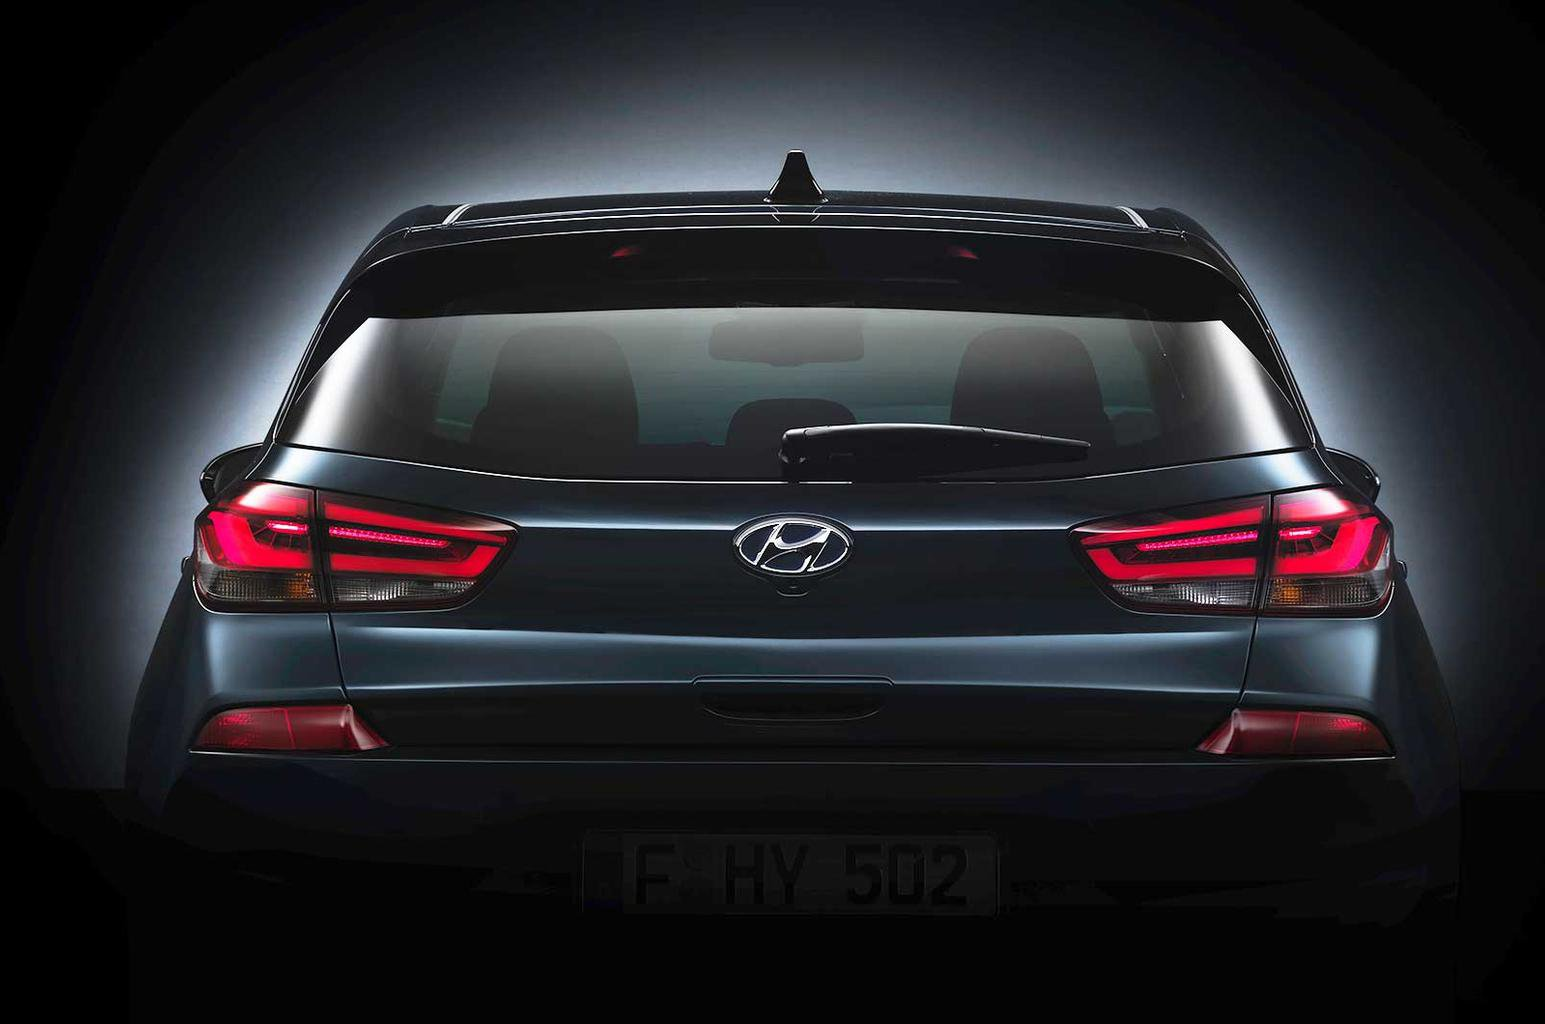 2017 Hyundai i30 - first pictures ahead of September debut